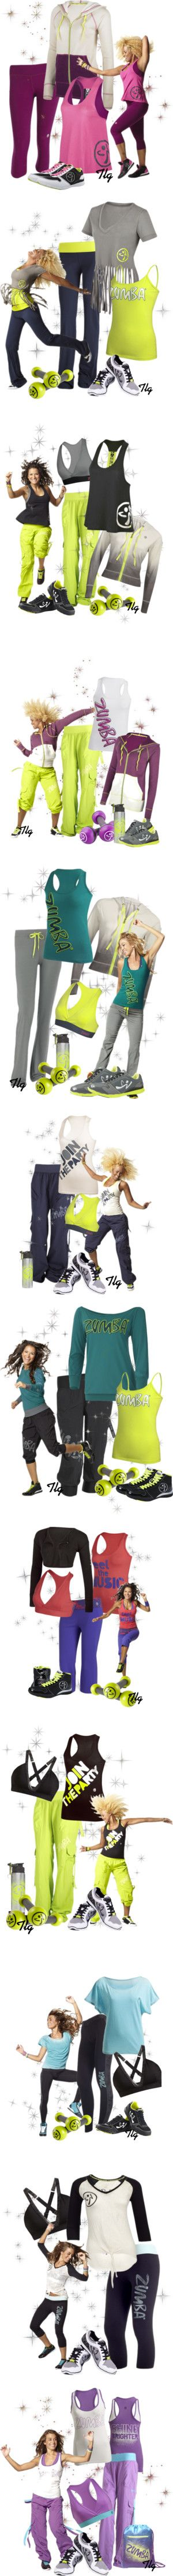 """Zumba Fashion"" by tiffany-palmer-godfrey ❤ liked on Polyvore"